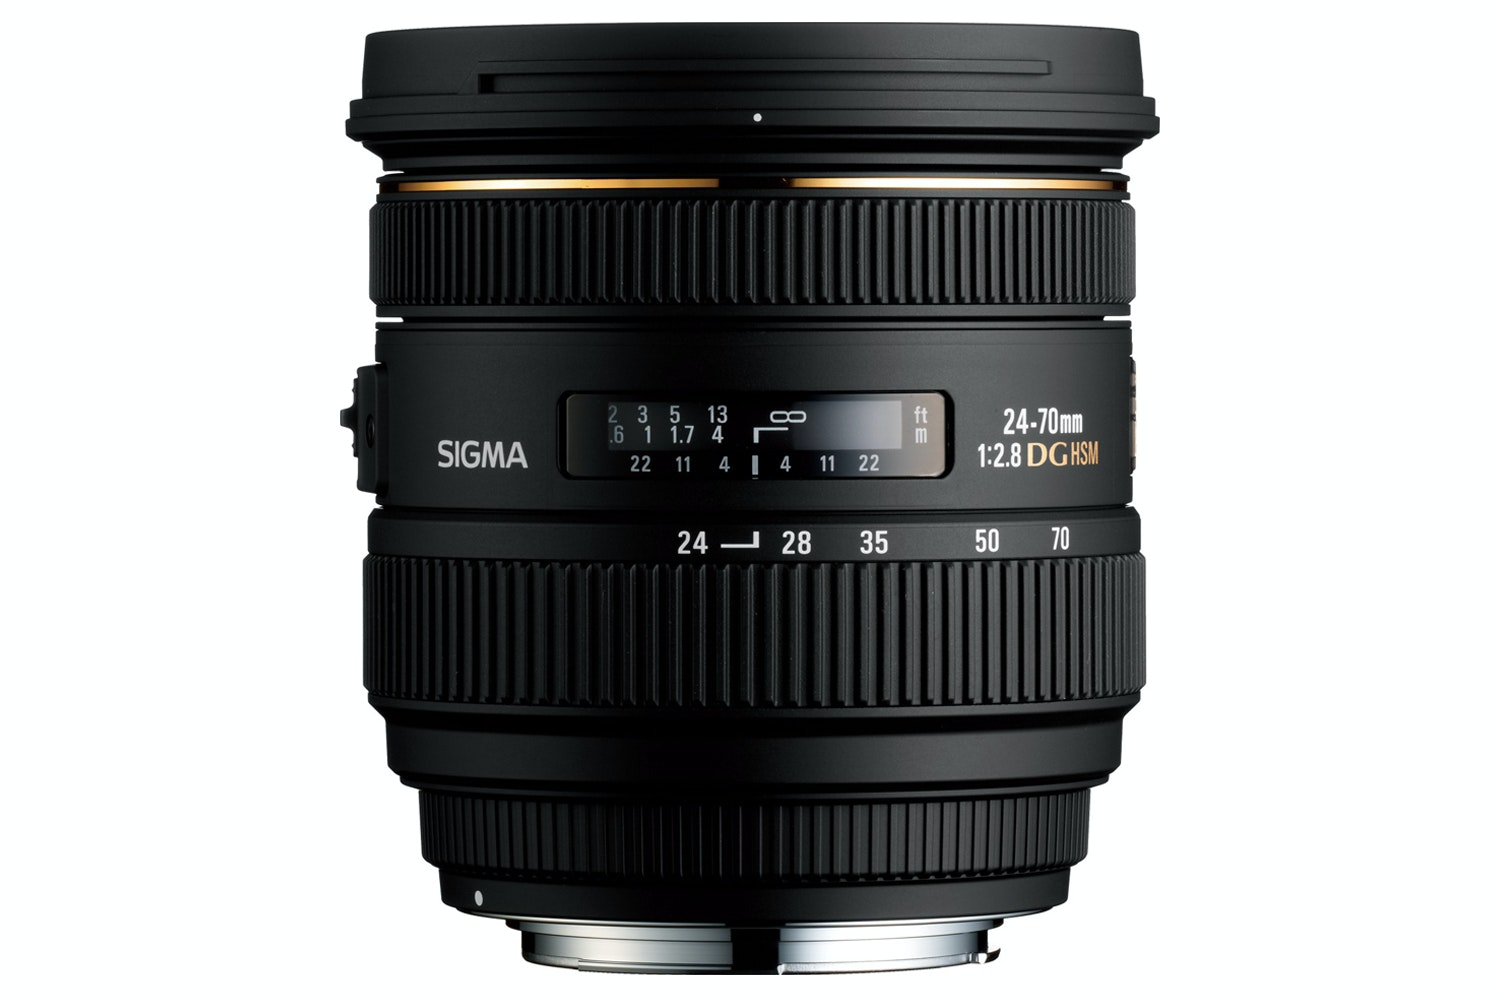 Sigma 24-70mm f2.8 IF EX DG HSM for Canon